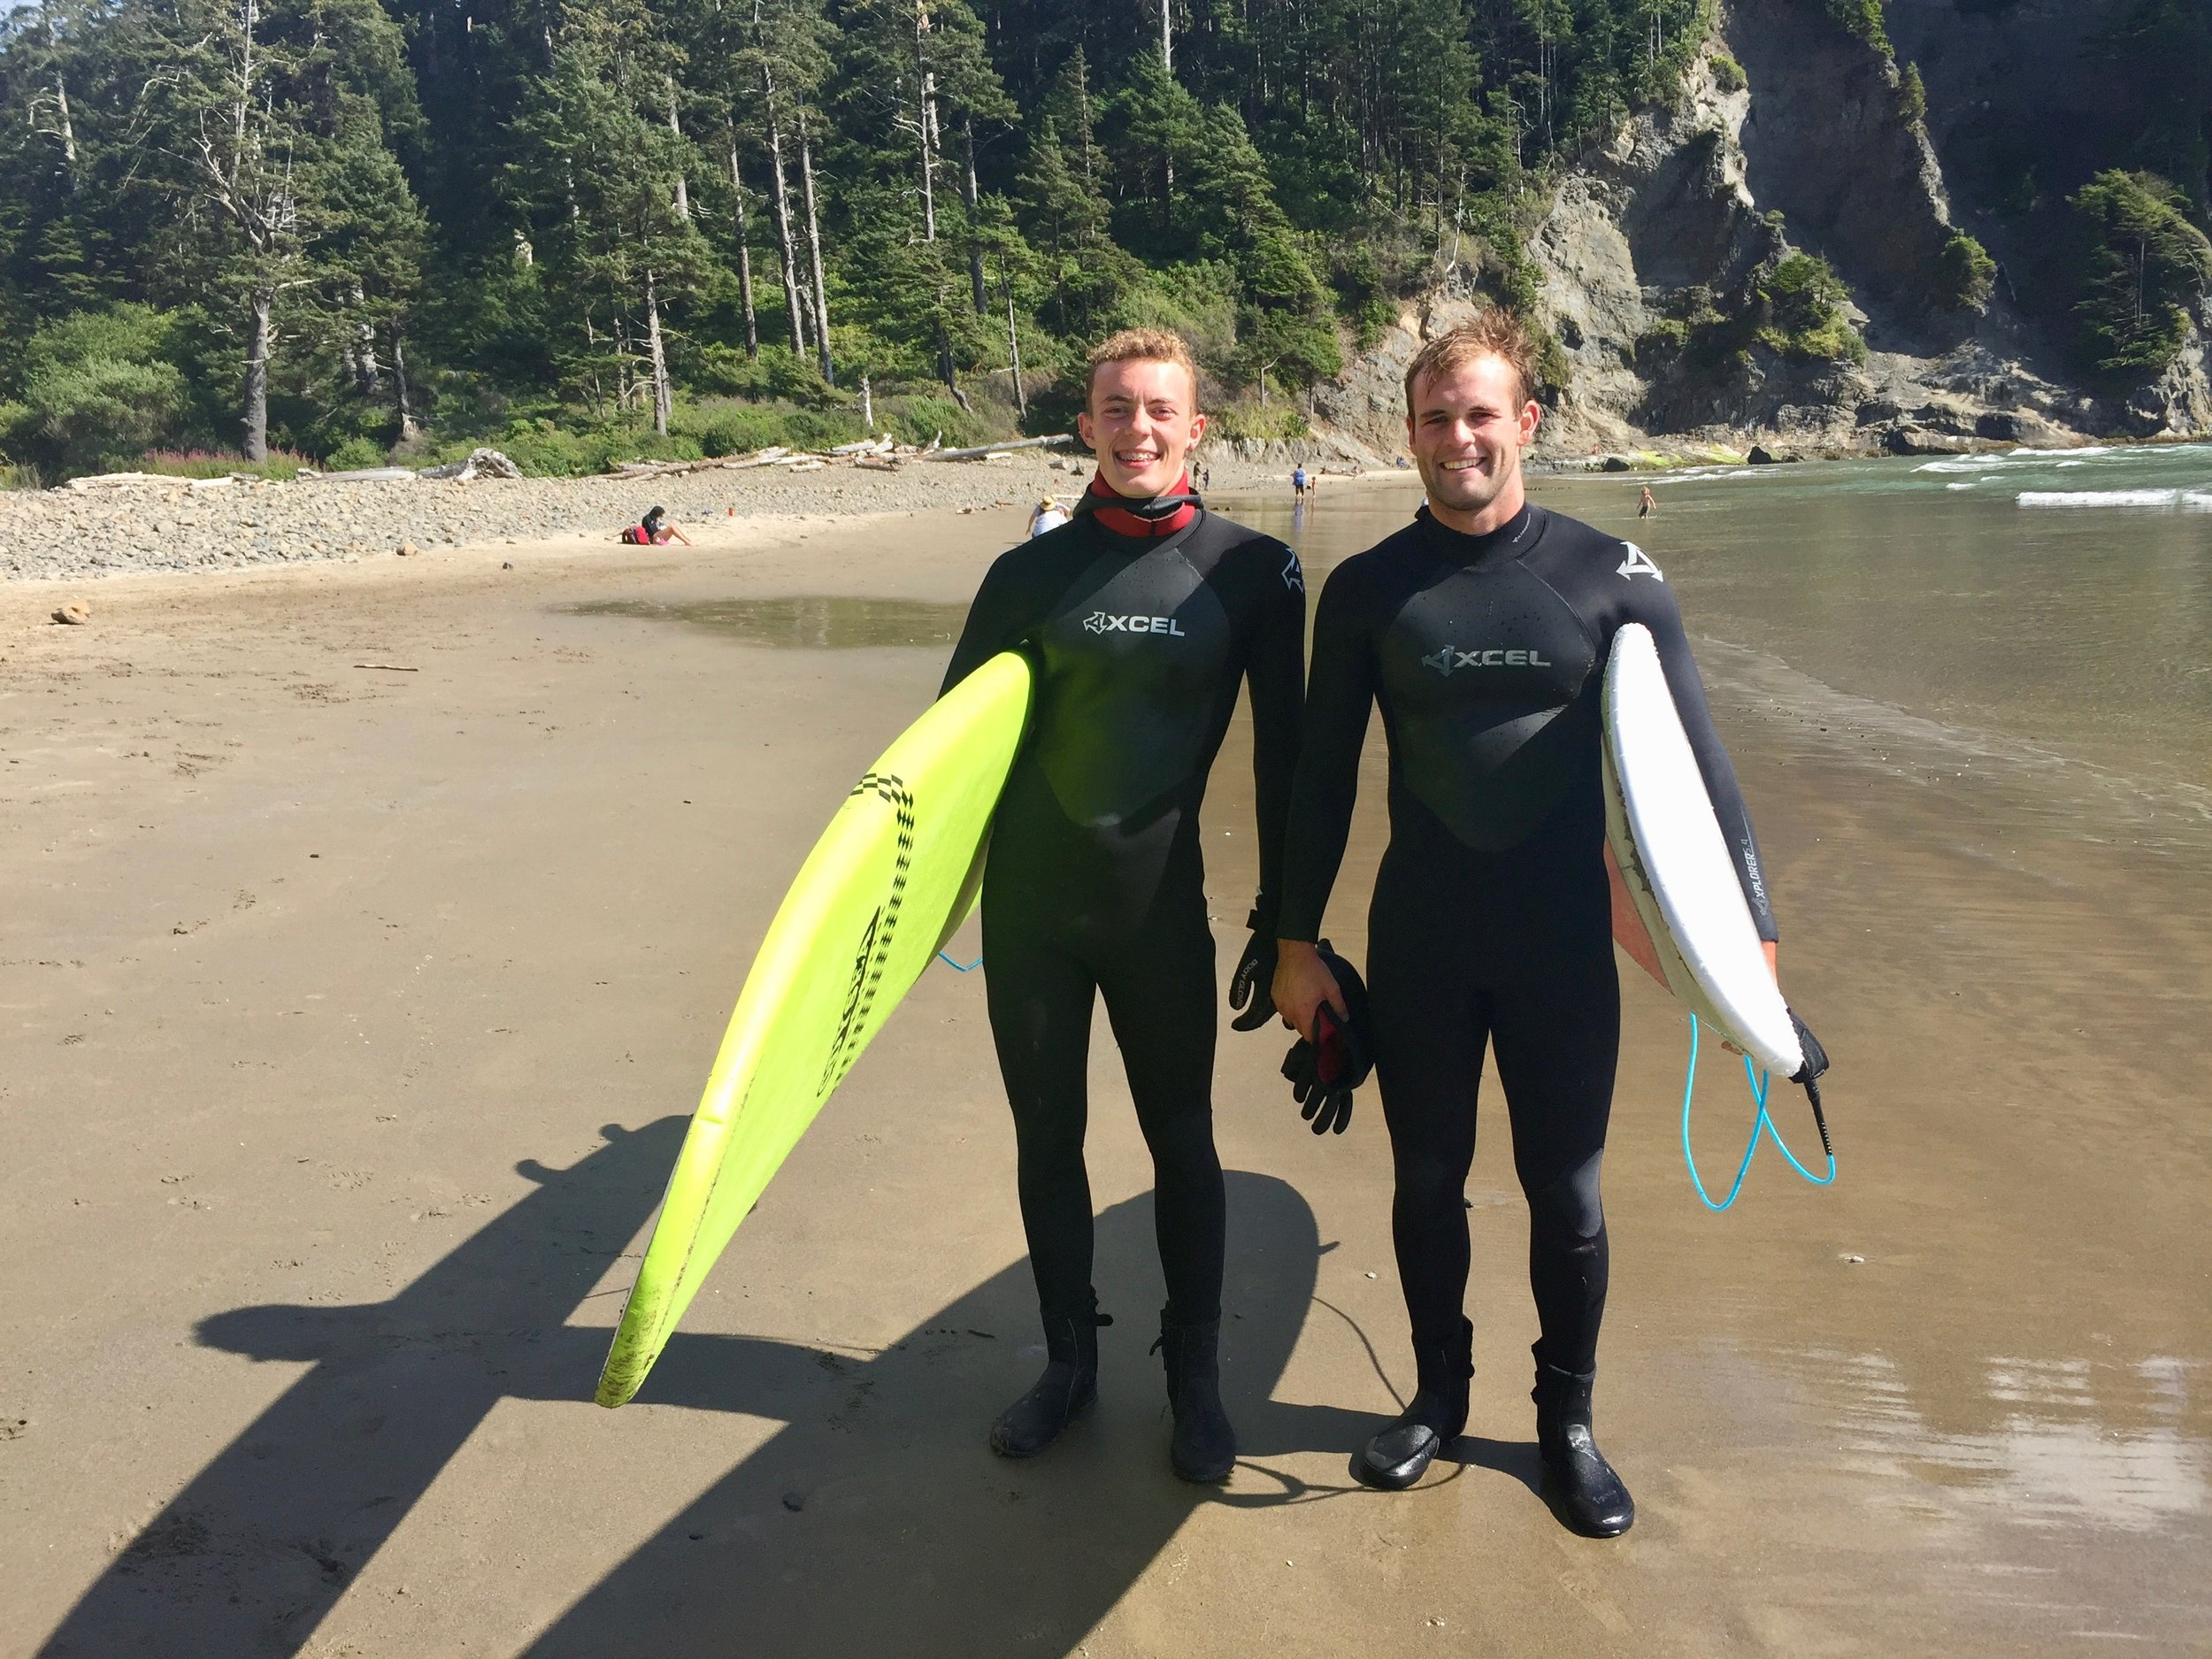 Photo taken August, 2016 on the beach at Seaside, Oregon. Clark (23) and Trey (17) spent several hours being schooled by the ocean!